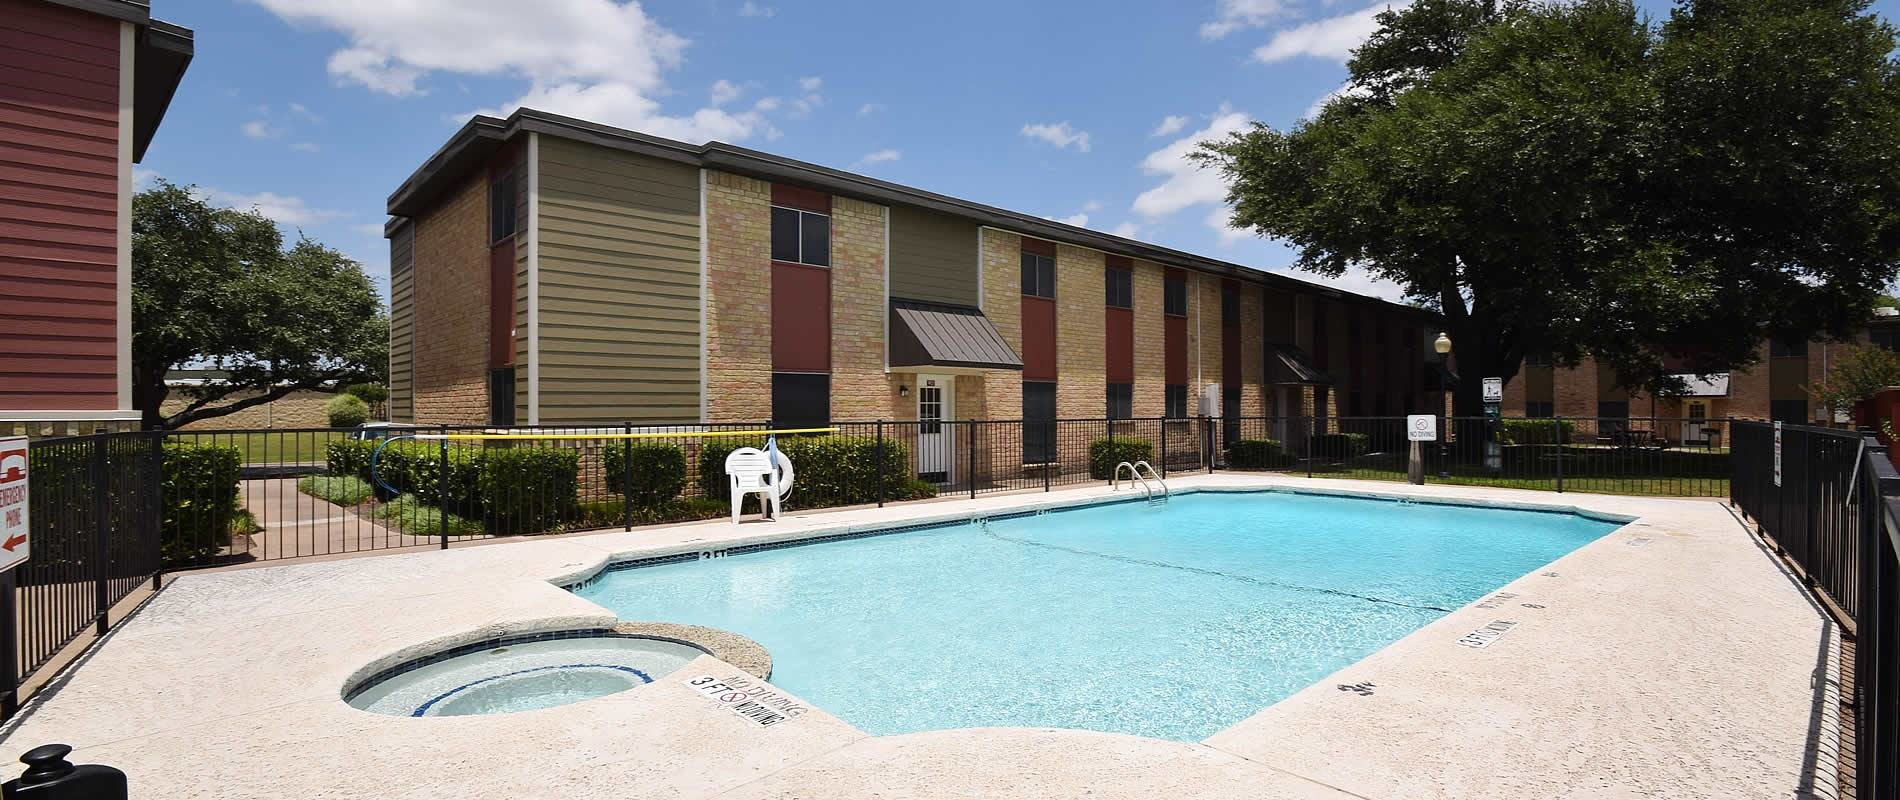 Best One Bedroom Apartments Waco Texas Www Resnooze Com With Pictures